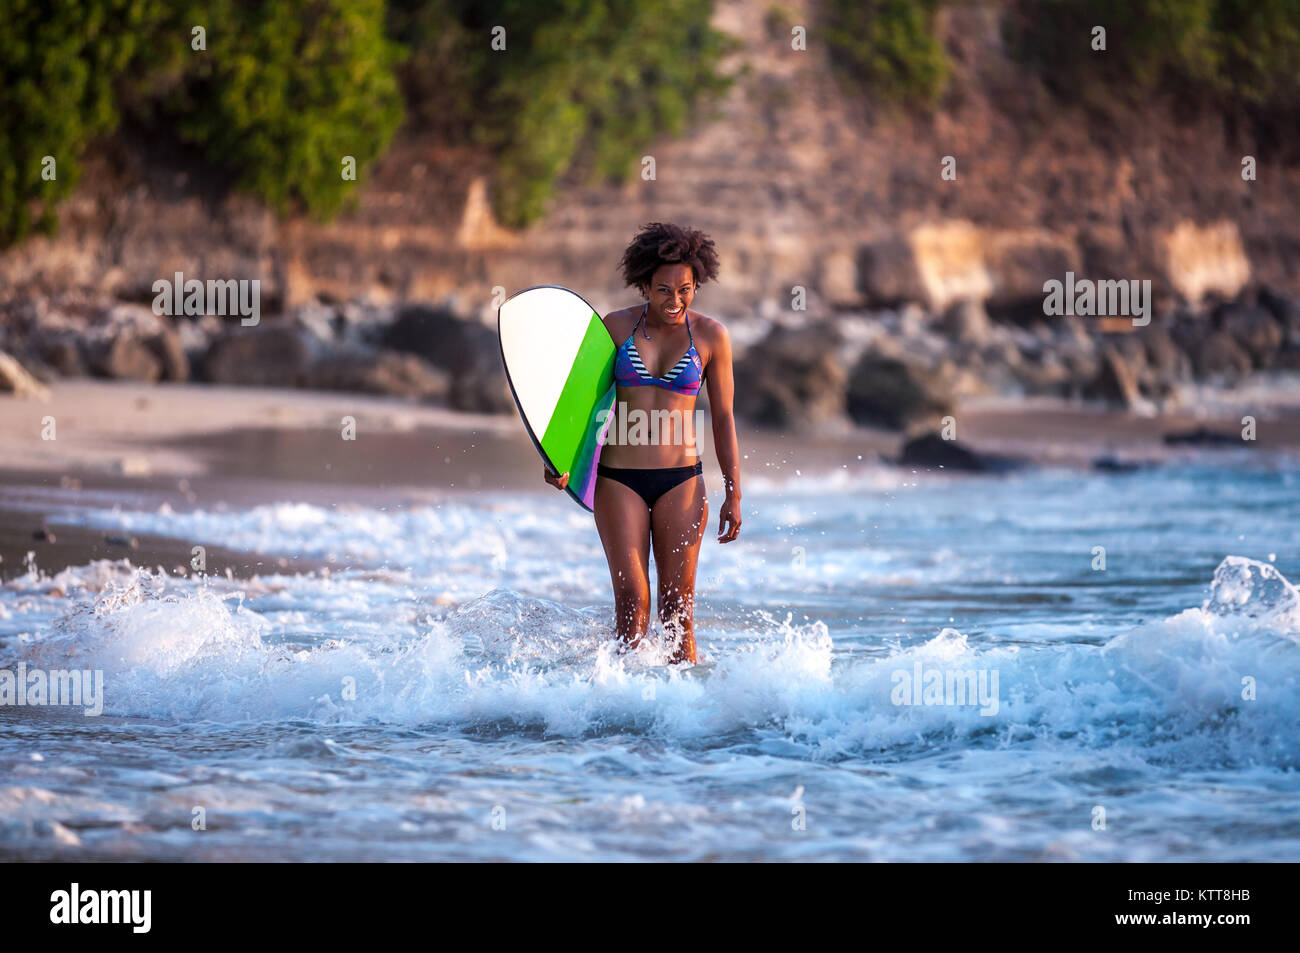 Surfer girl with afro hairstyle walking with surfboard on the Padang Padang beach at sunset in Bali, Indonesia - Stock Image